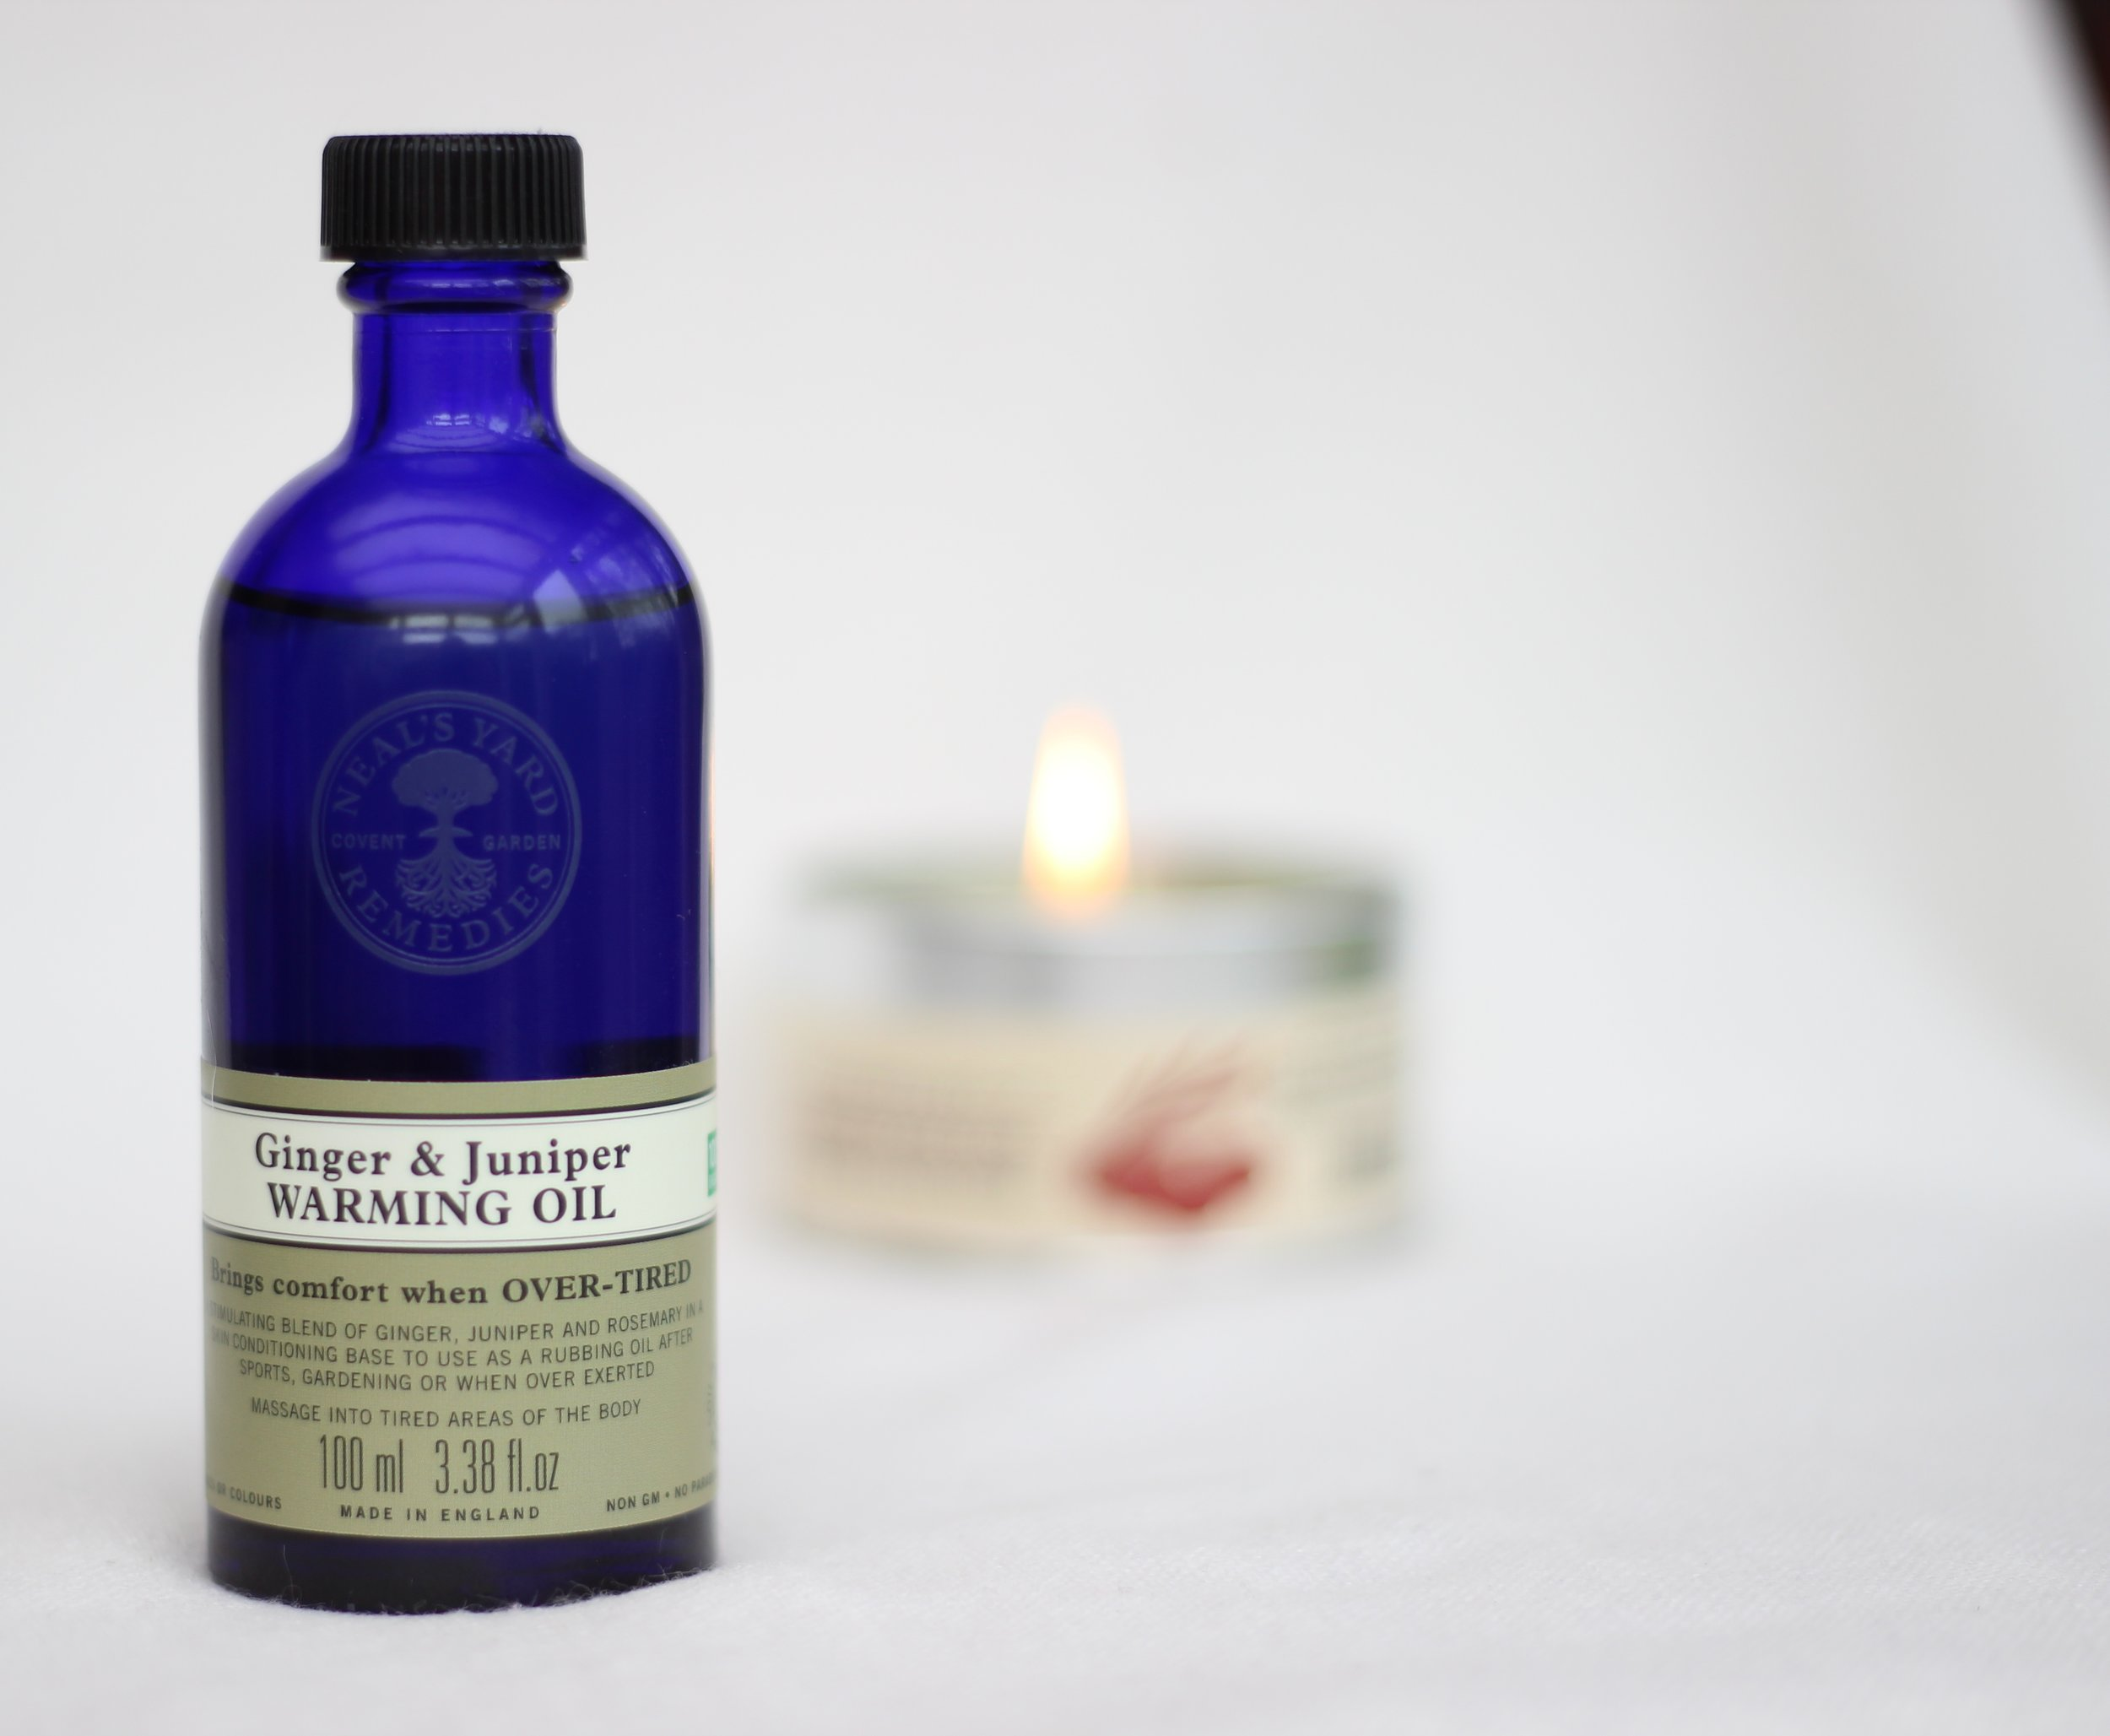 Neals Yard Ginger & Juniper Warming  Oil | Pink Elephant Blog